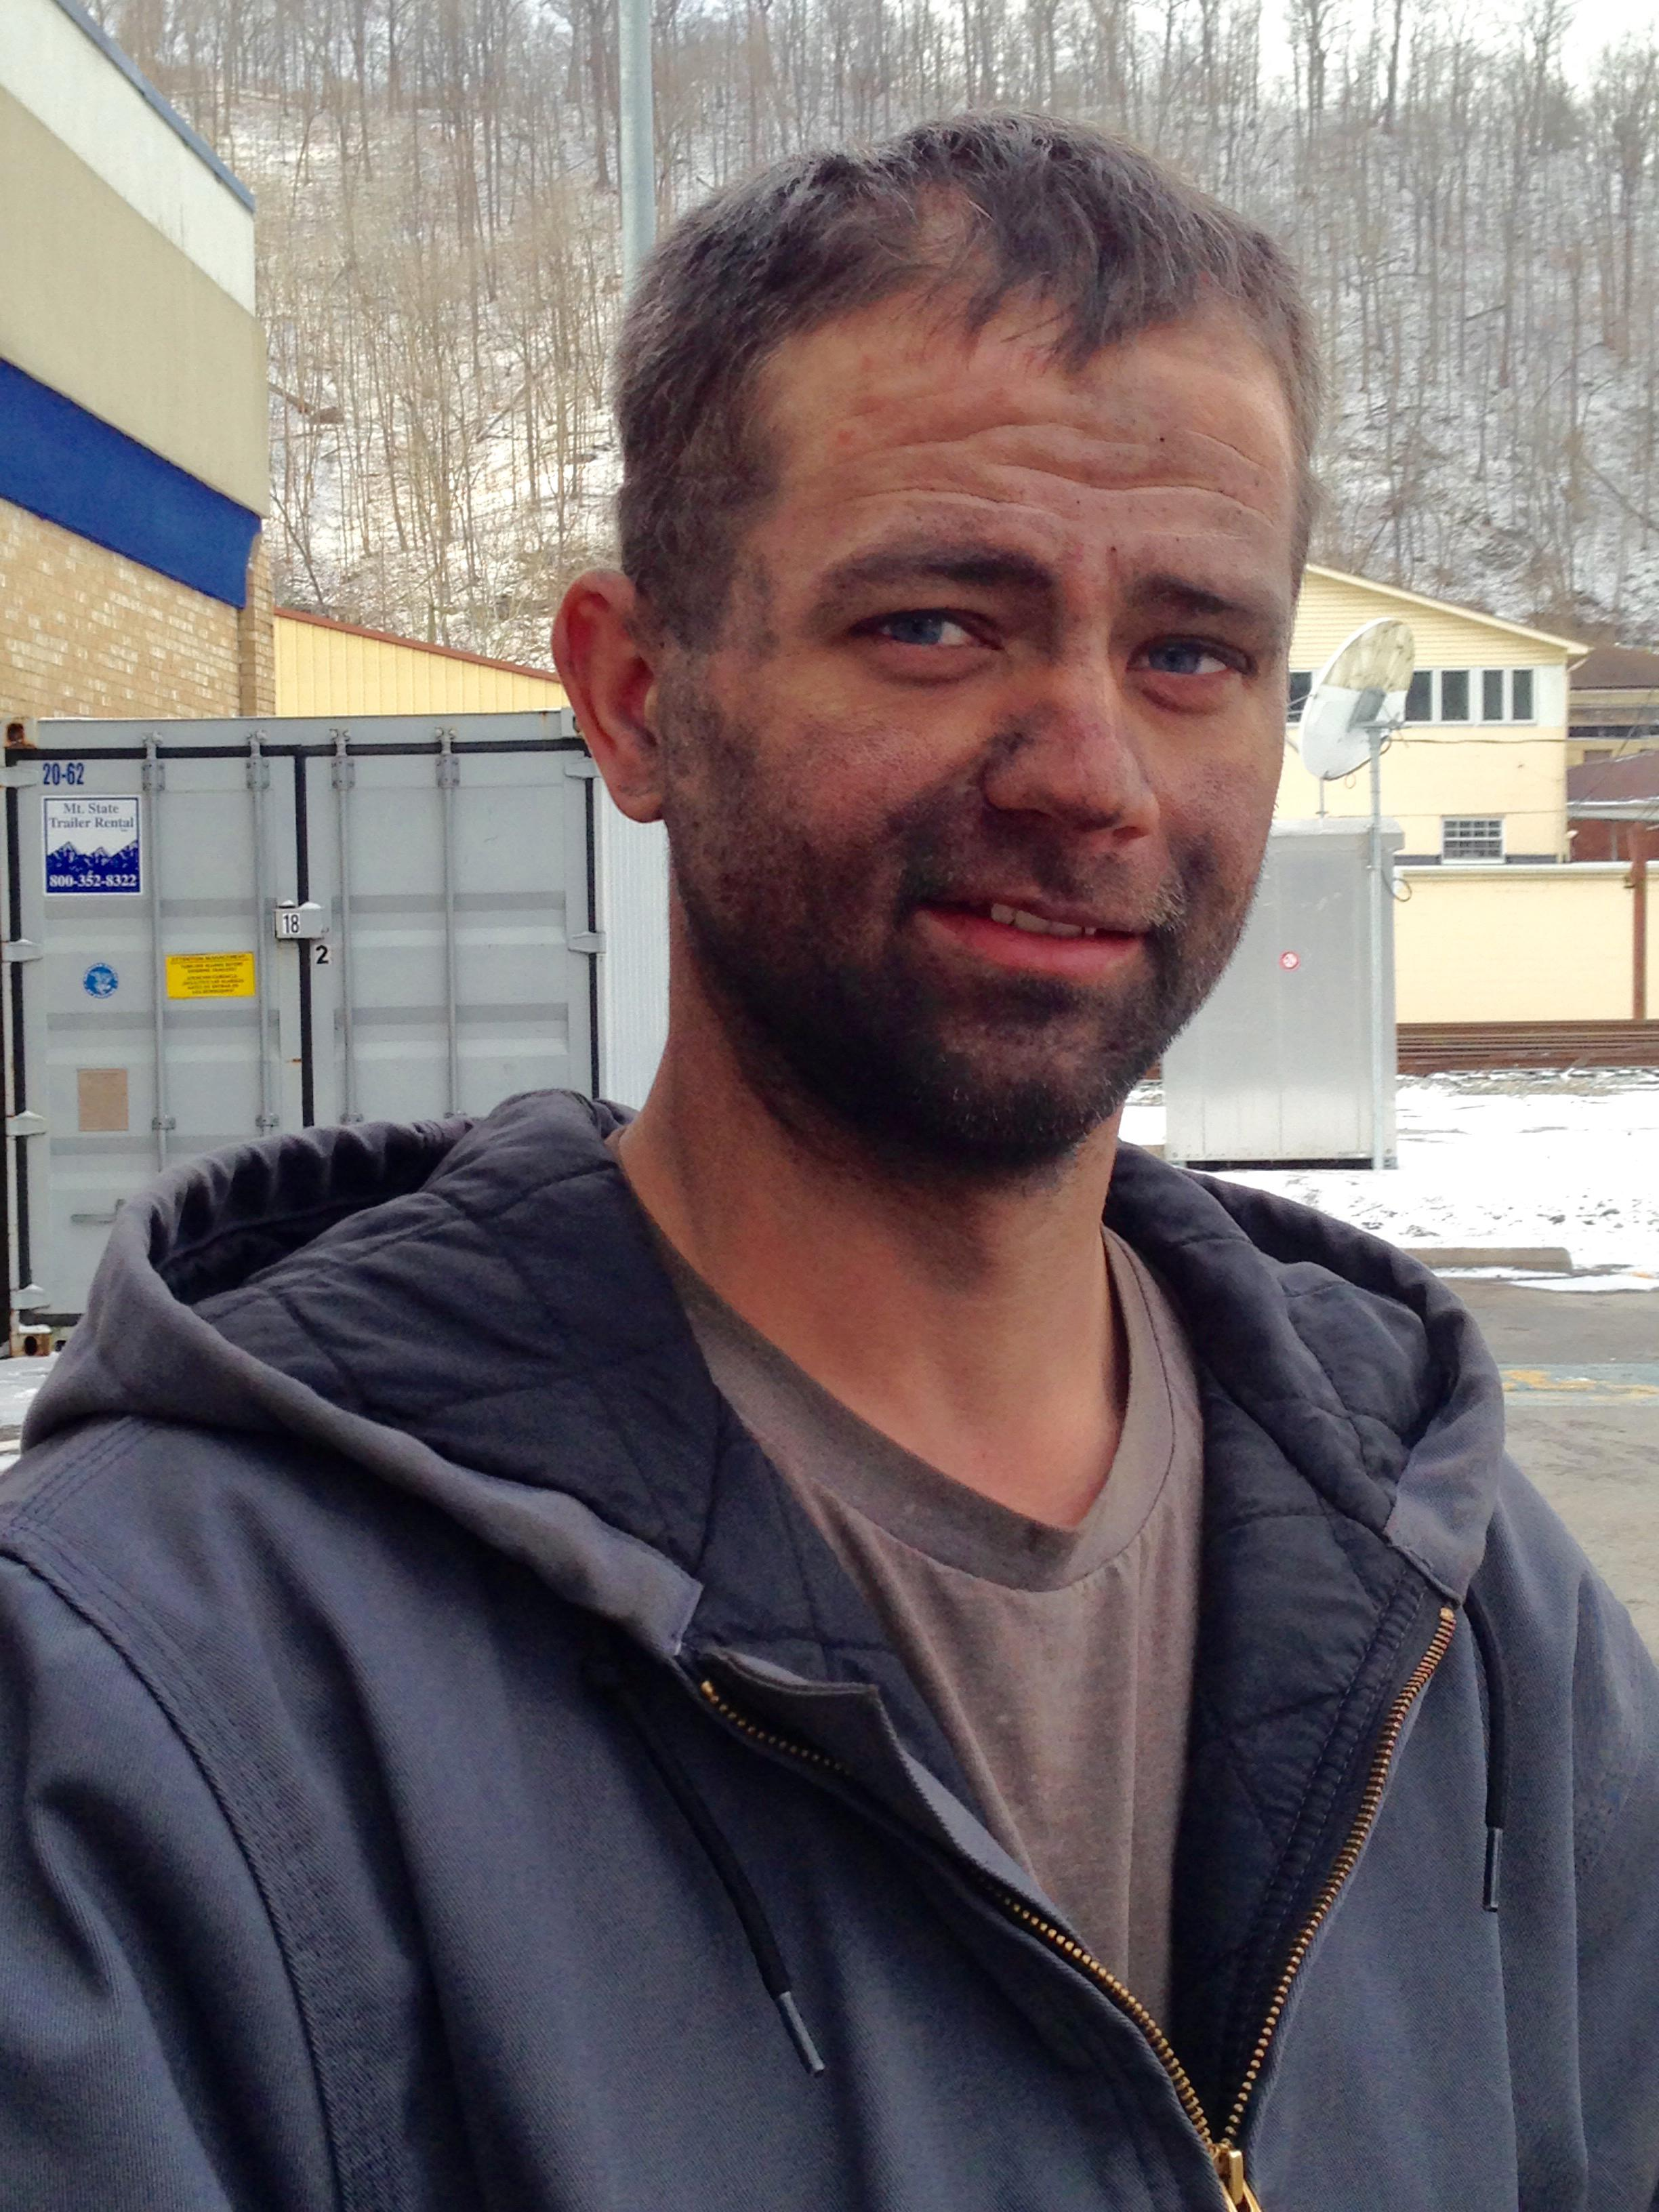 Reality tempers optimism in coal country after court ruling